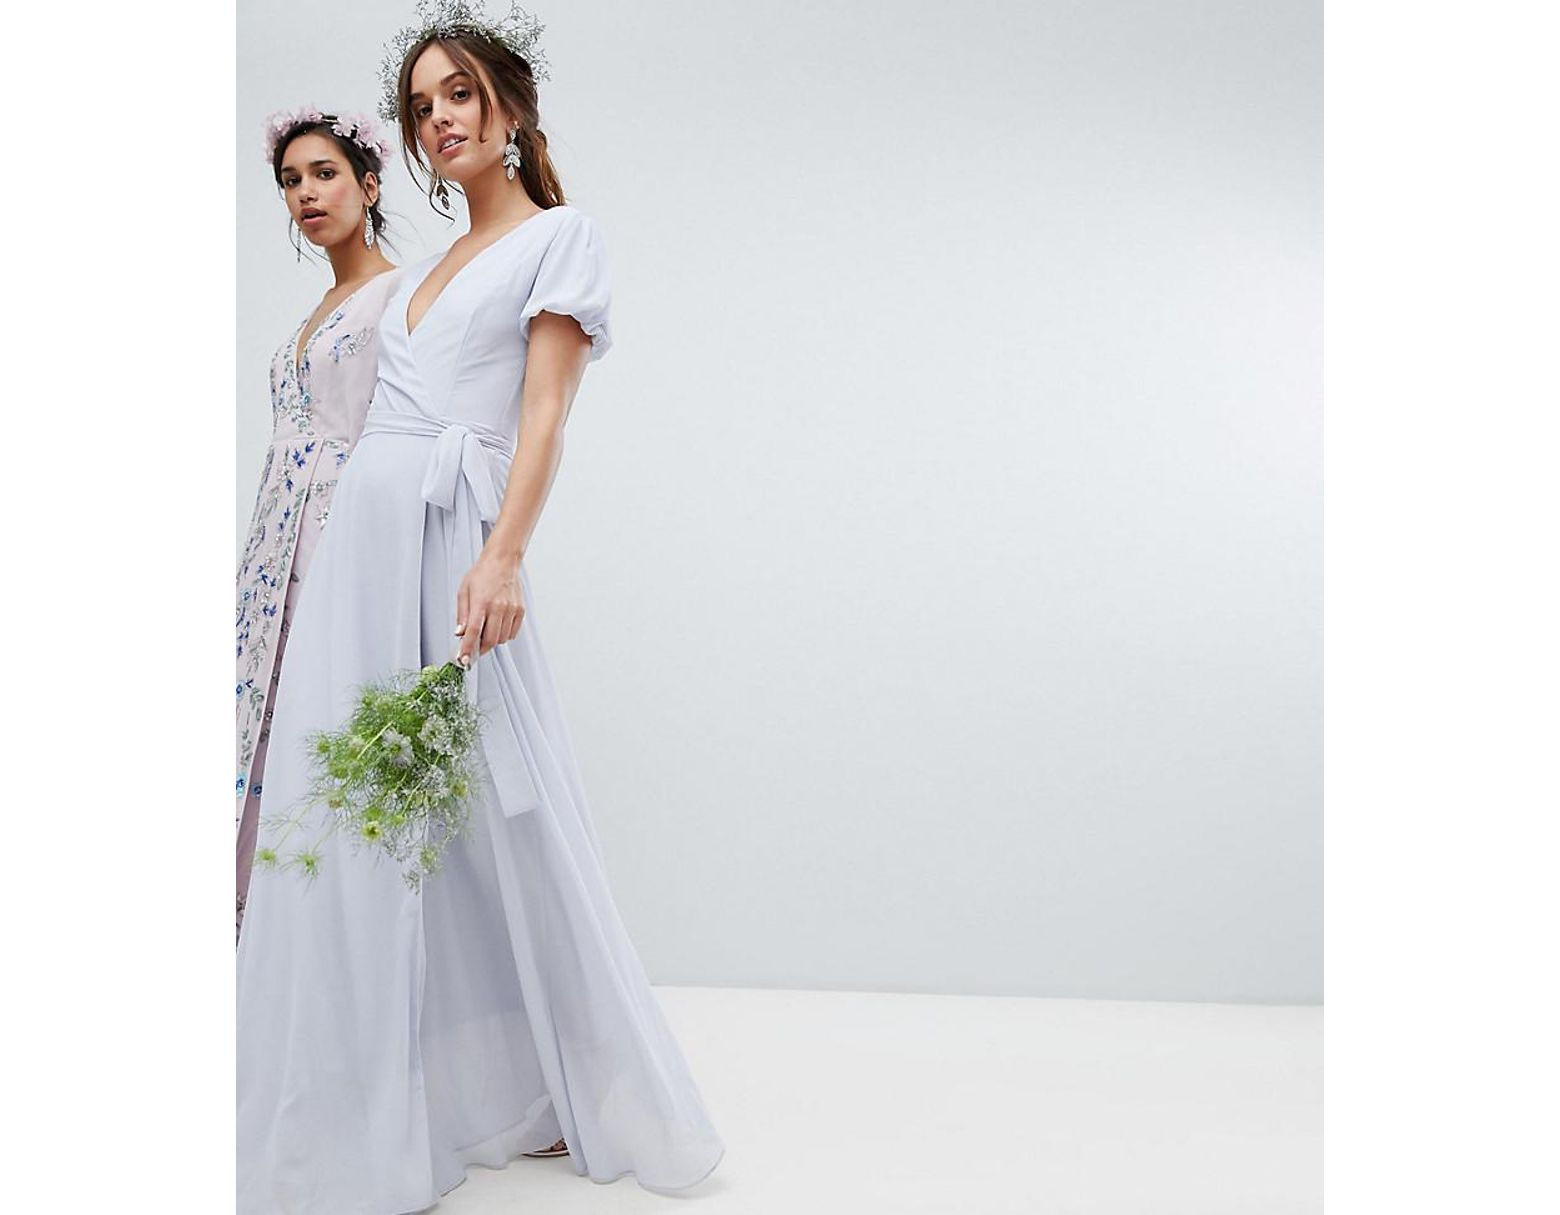 574a098fbf Lyst - TFNC London Wrap Maxi Bridesmaid Dress With Tie Detail And Puff  Sleeves in Gray